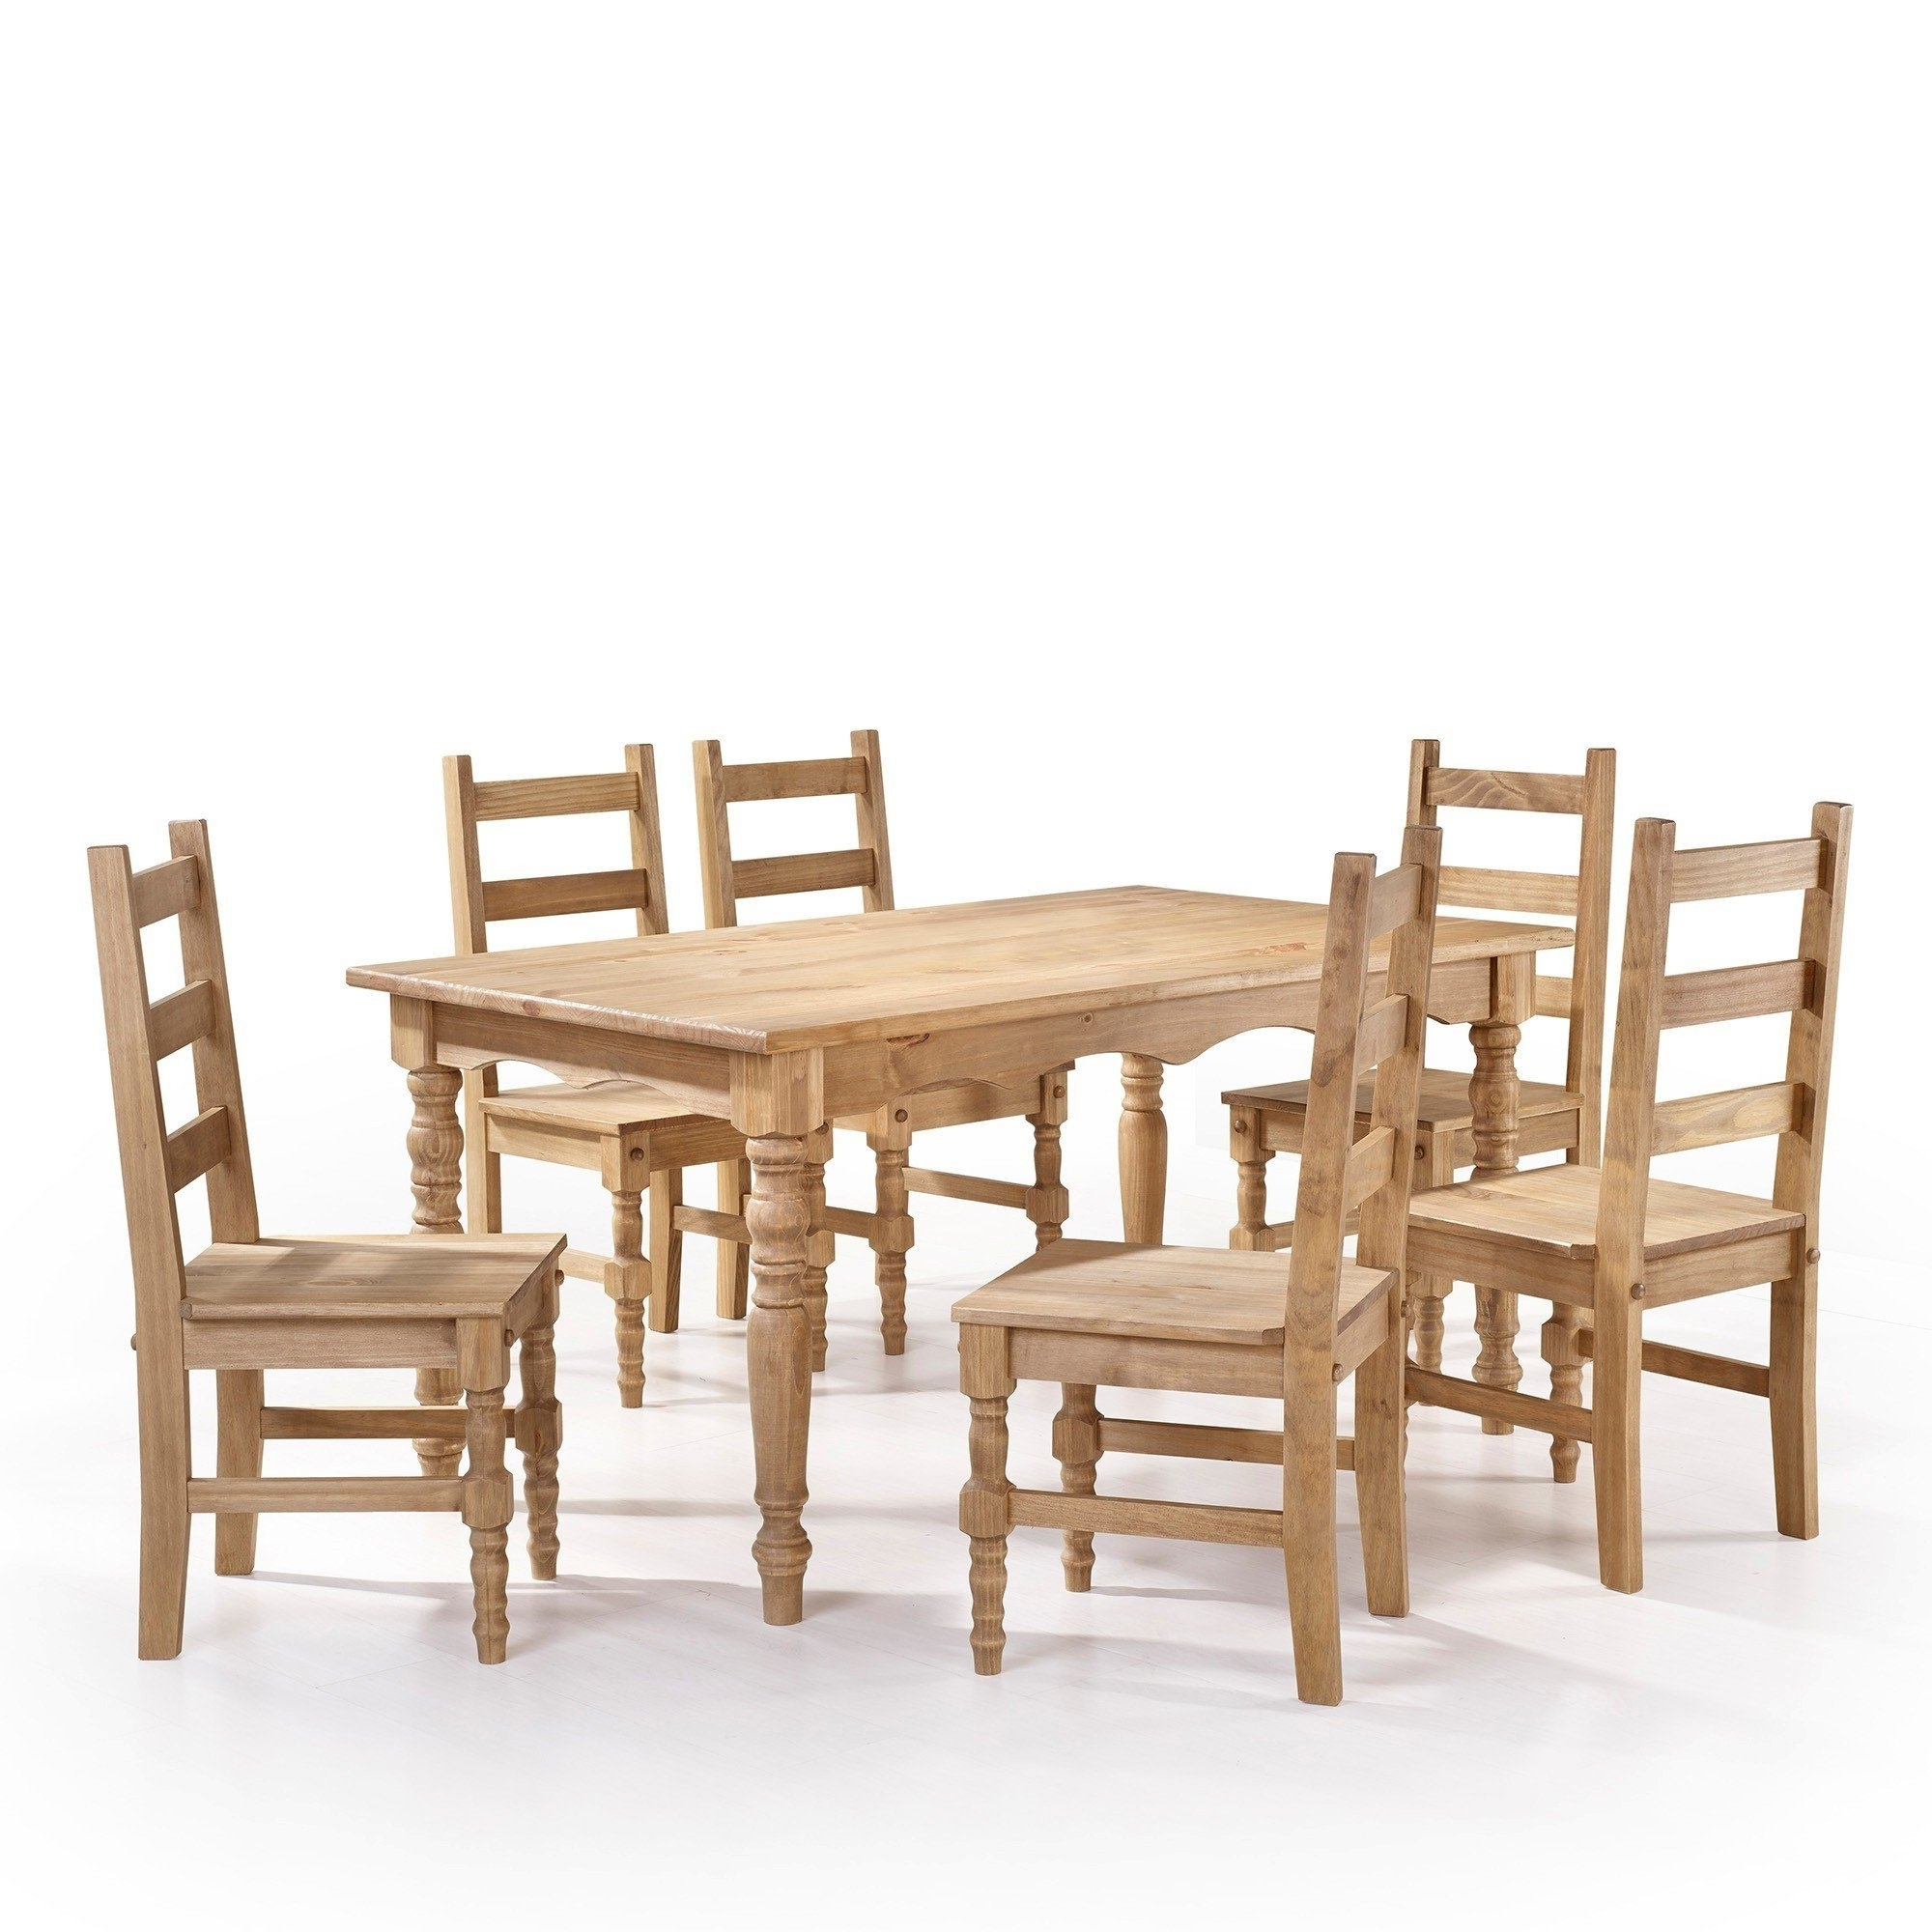 Shop Manhattan Comfort Jay 7 Piece Solid Wood Dining Set With 6 Inside Most Up To Date Helms 6 Piece Rectangle Dining Sets With Side Chairs (View 12 of 25)